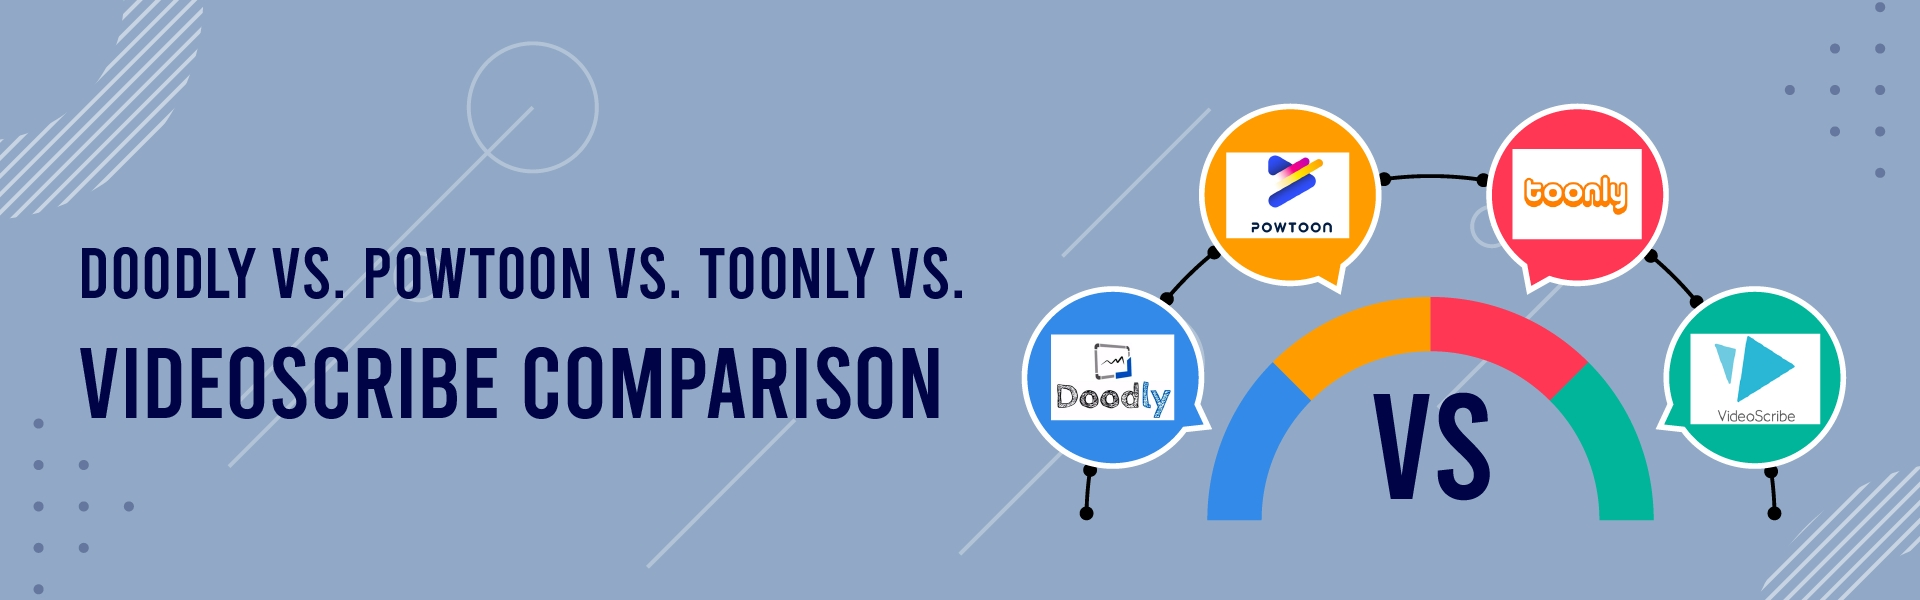 You are currently viewing Doodly vs. Powtoon vs. Toonly vs. VideoScribe Comparison